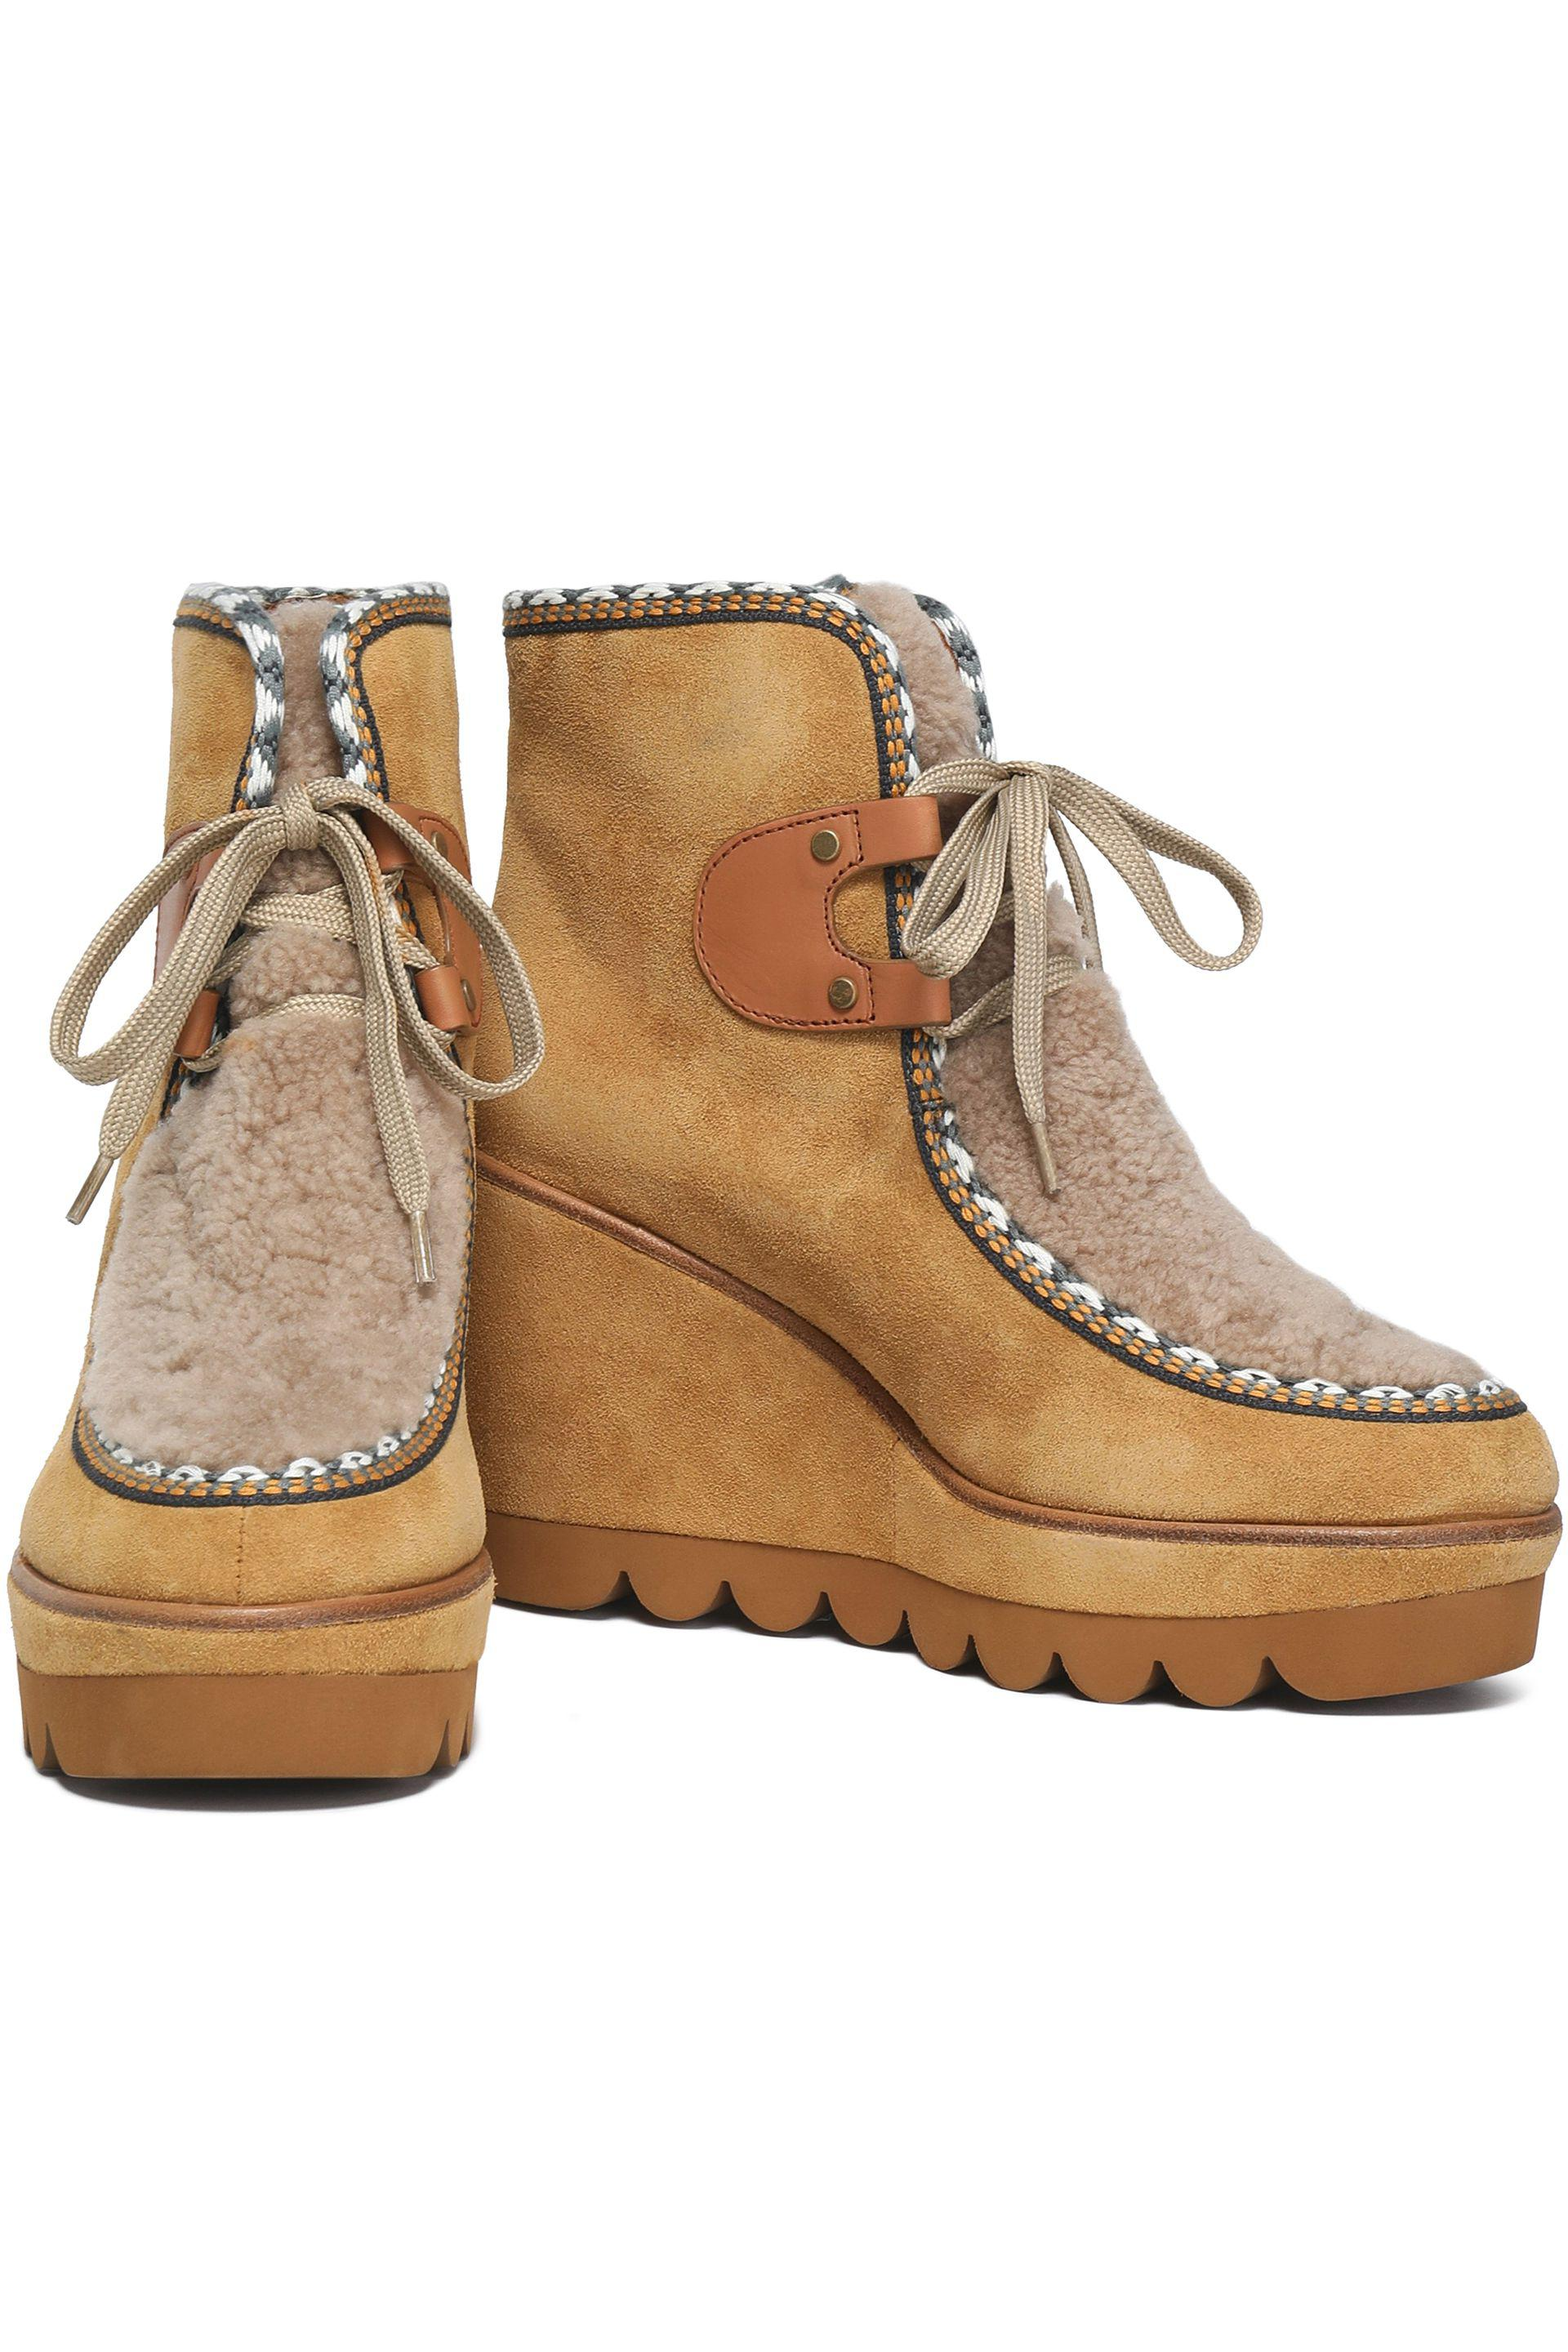 784e02d2275 See By Chloé Natural Shearling-paneled Suede Wedge Ankle Boots